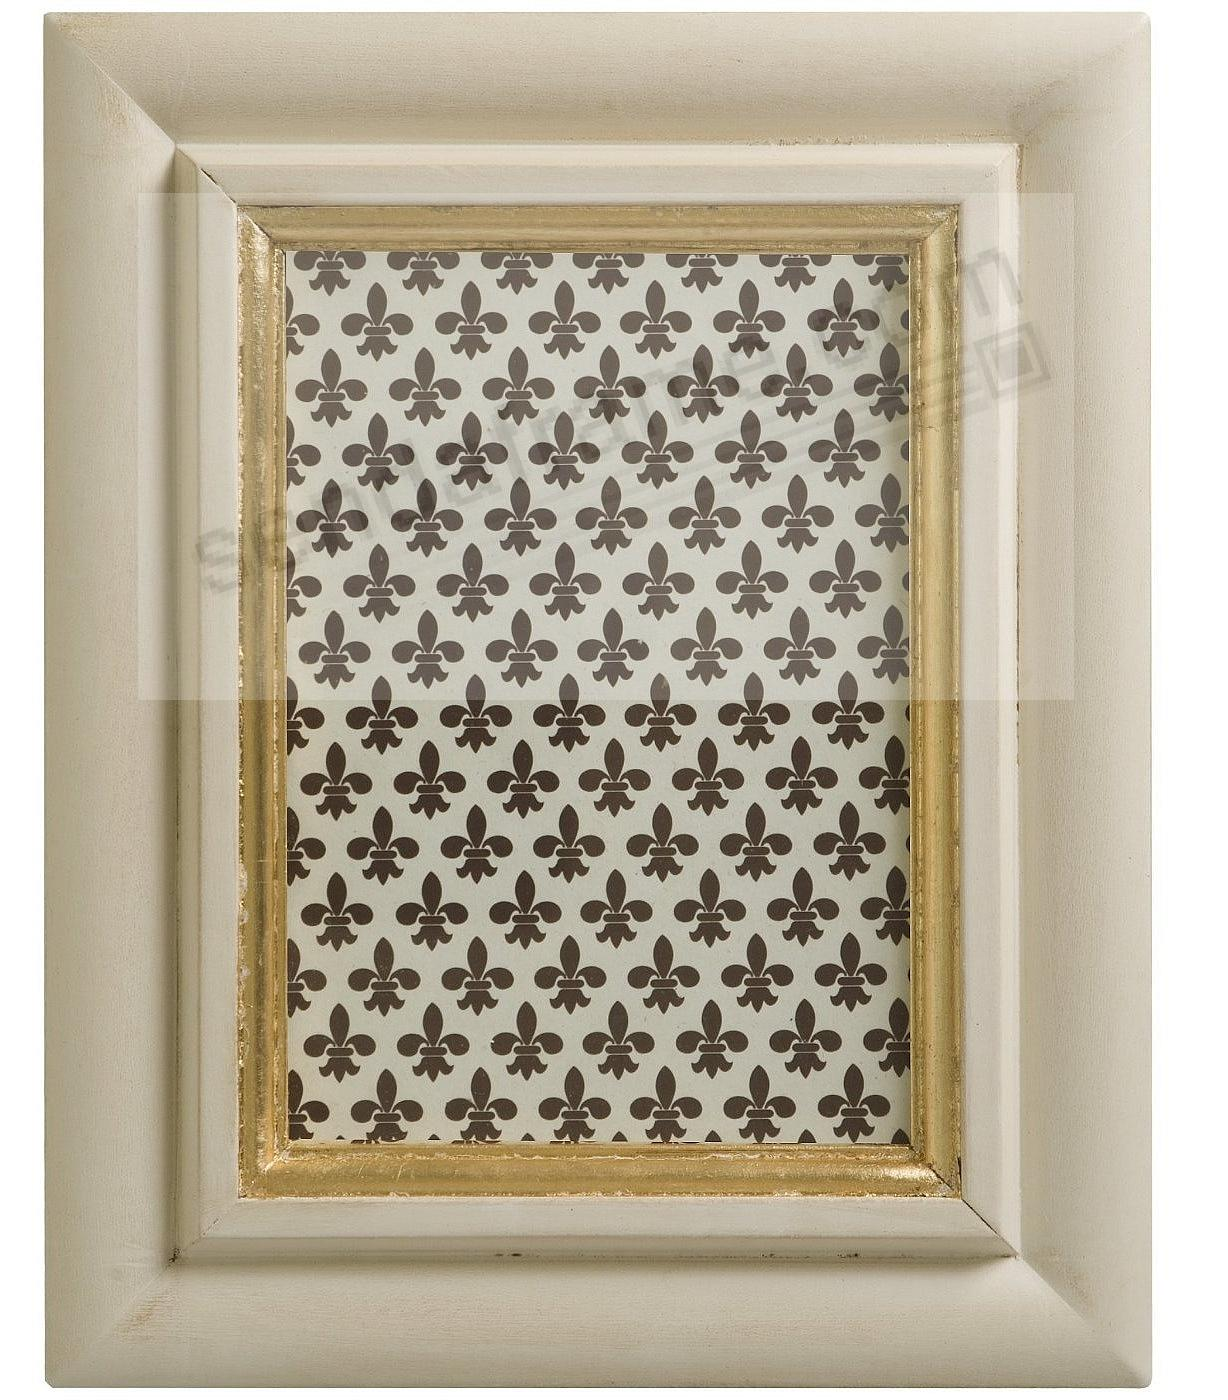 Antique ivory and gold carved wood 5x7 frame by eccolo picture antique ivory and gold carved wood 5x7 frame by eccolo jeuxipadfo Image collections